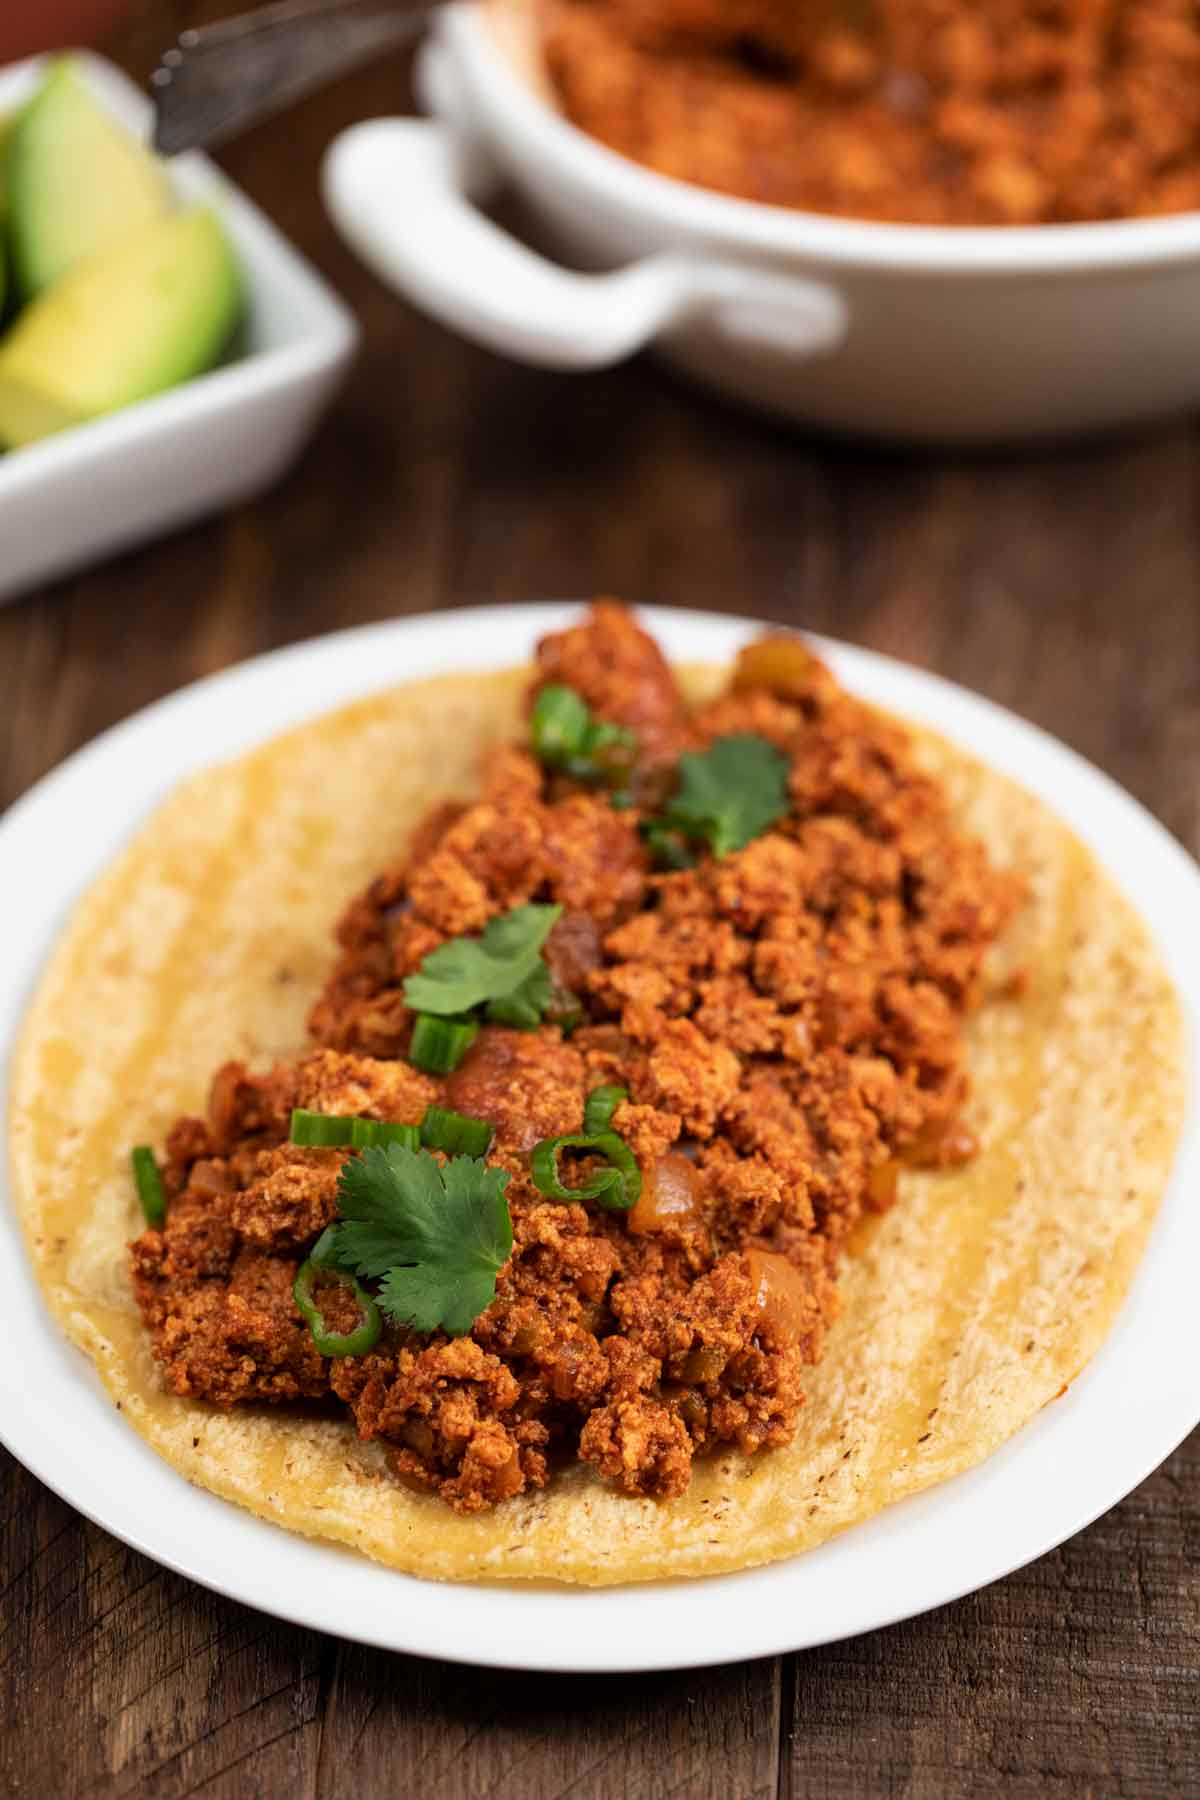 A vegan soy chorizo taco filled with soy chorizo filling, green onions and cilantro.